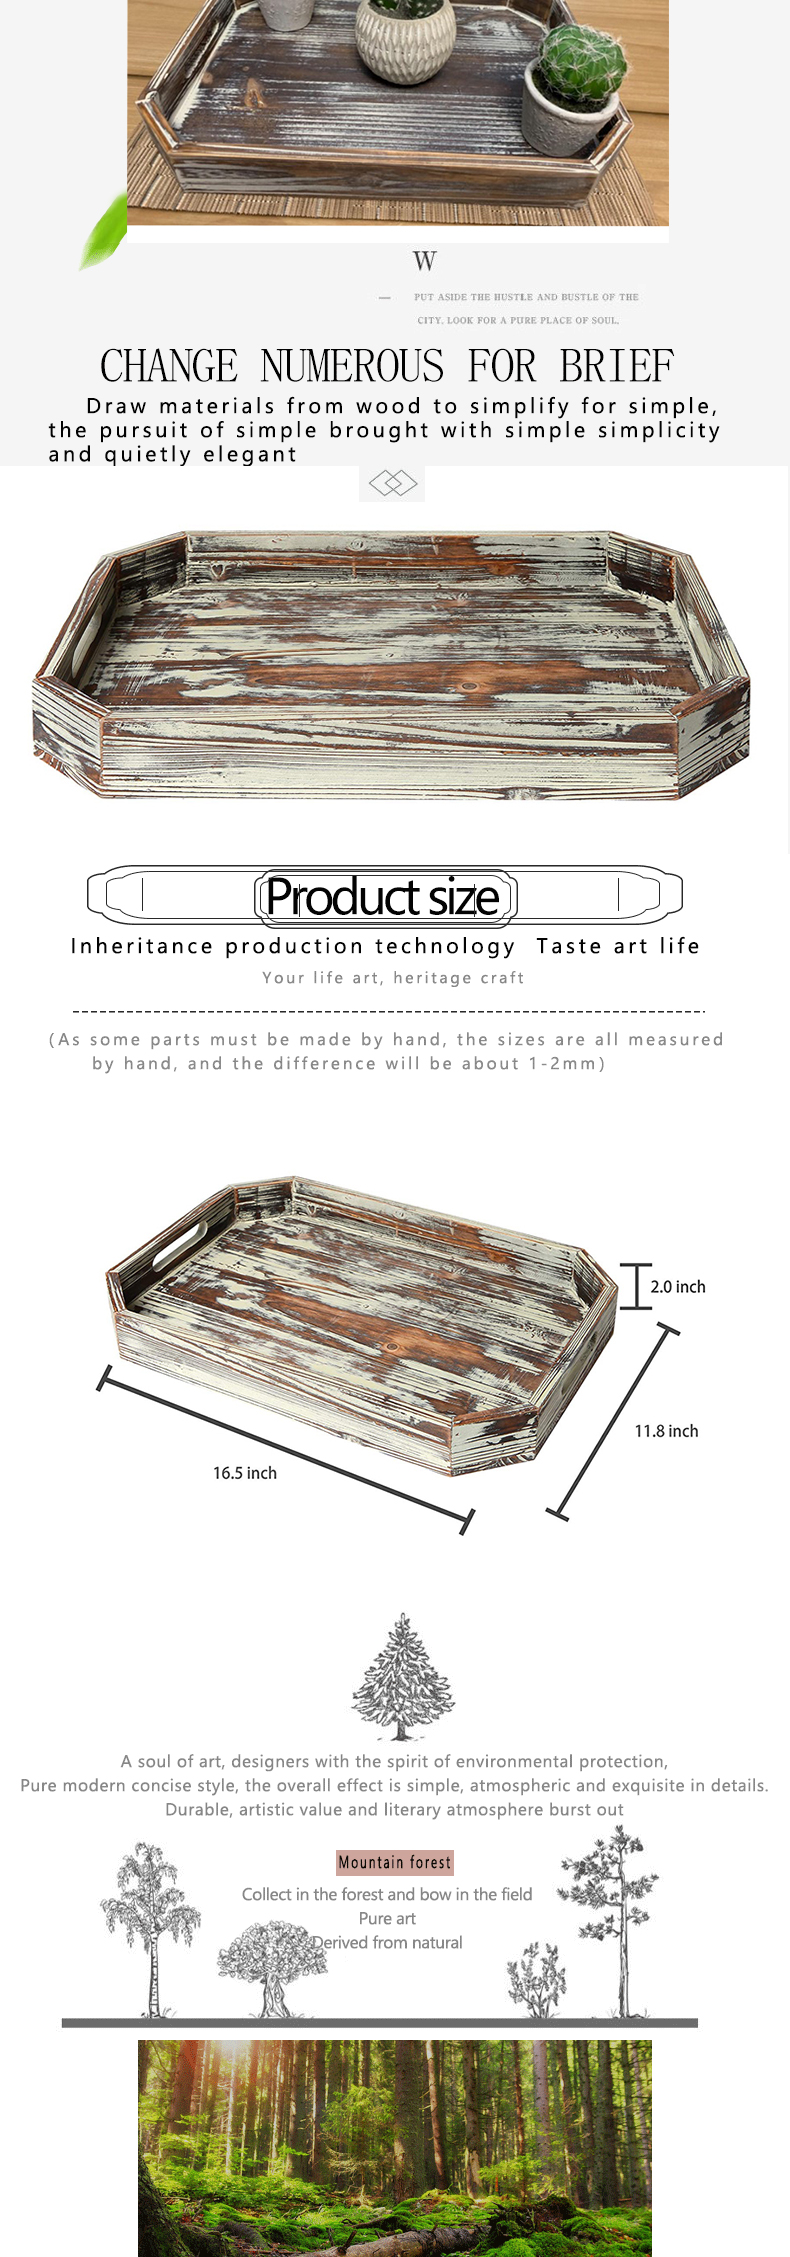 Wholesale Distressed style wood serving brakfast tray with angled edges